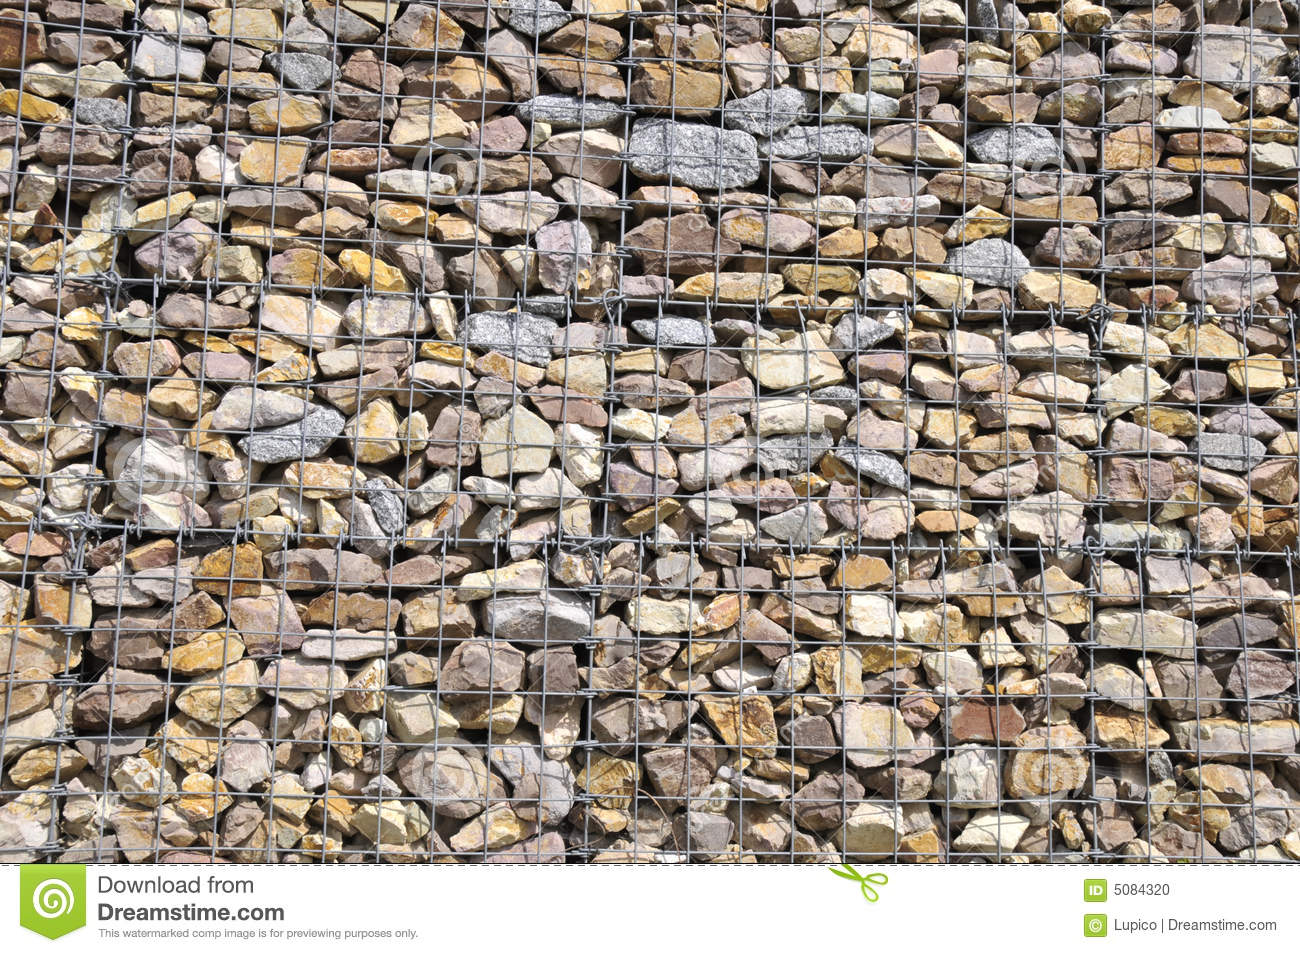 gabion wall stock photo image of multi cage fence retain 5084320. Black Bedroom Furniture Sets. Home Design Ideas